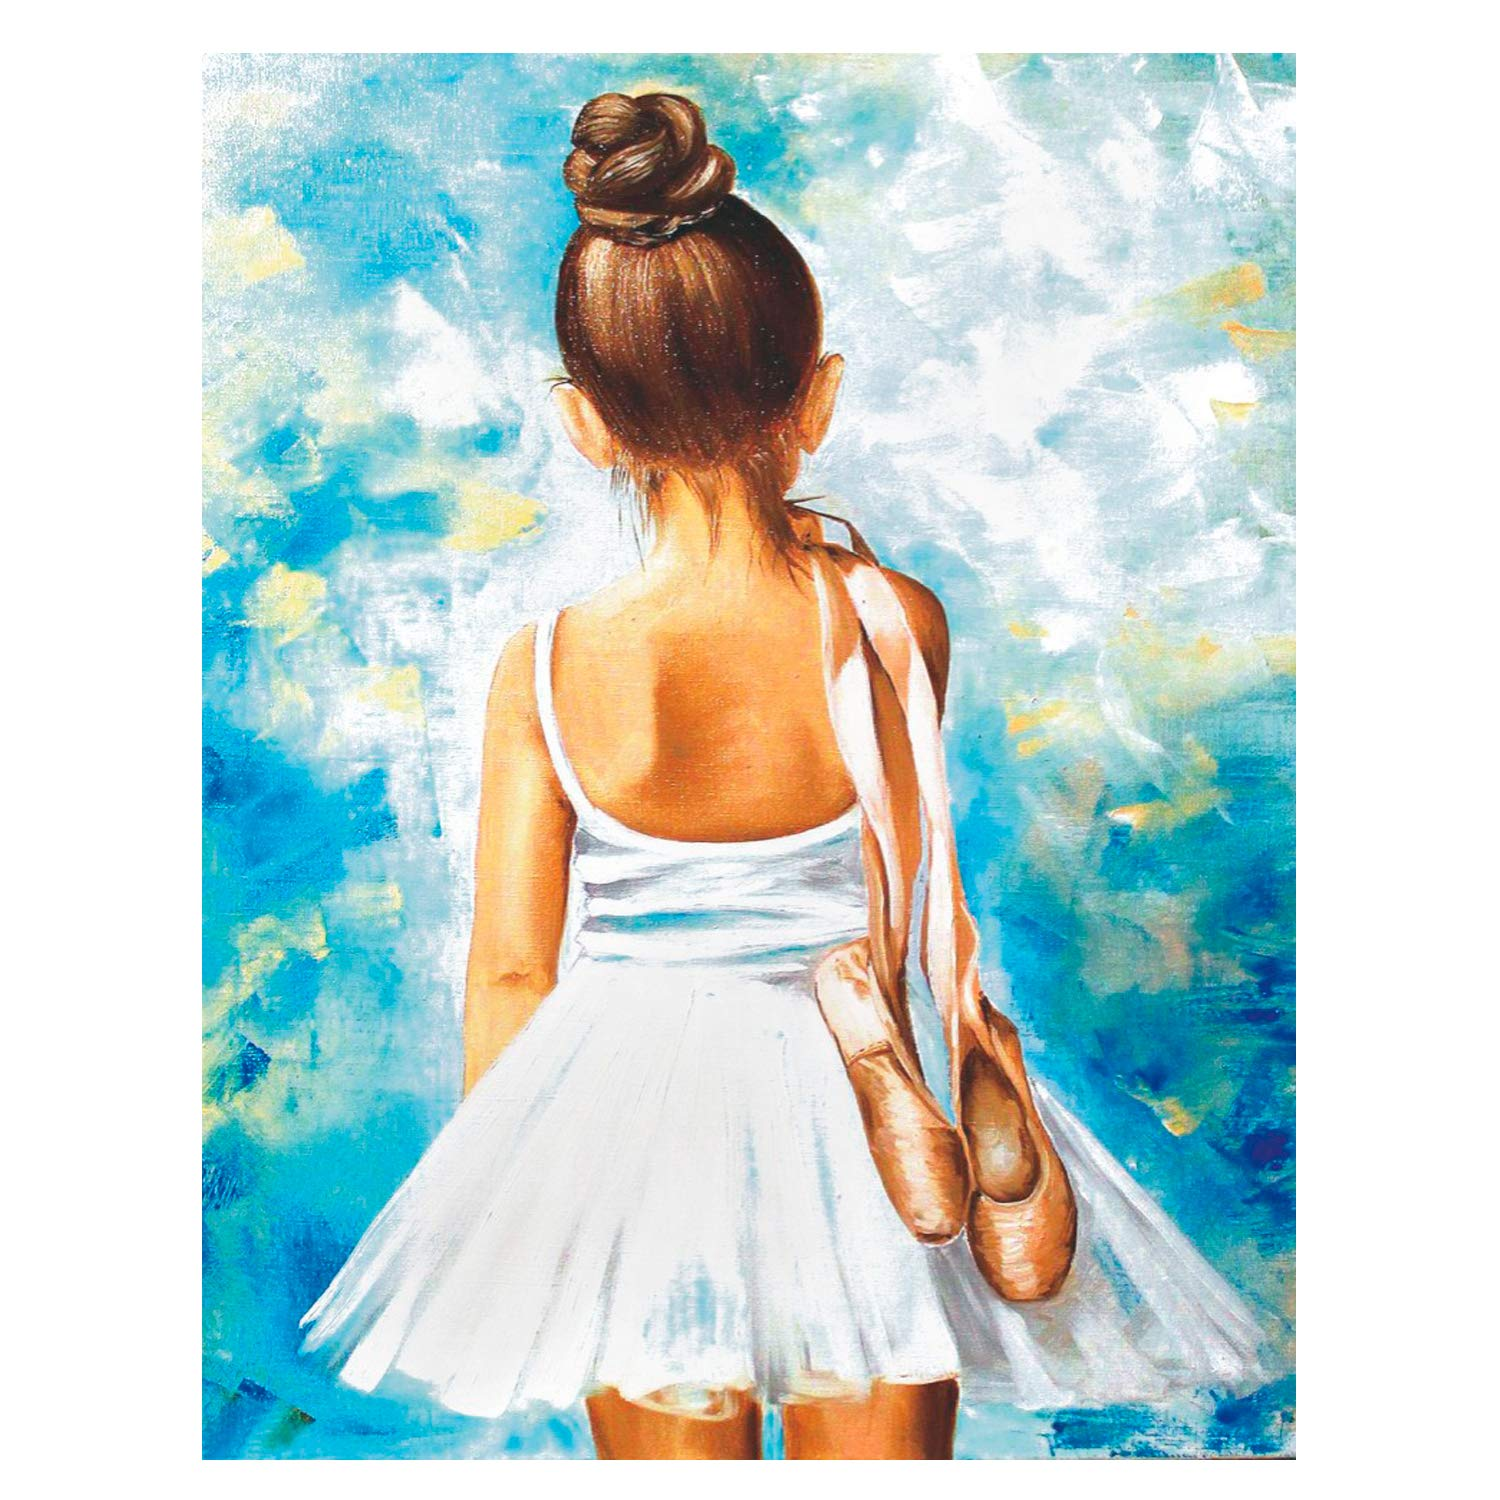 [Wooden Framed] DIY Painting, Paint by Number Kits for Adults - Little Ballerina - Includes Brushes, Paints and Numbered Canvas - 16x20 Inch - Great for Kids and Adults - by Tsvetnoy by Tsvetnoy - the world of bright ideas